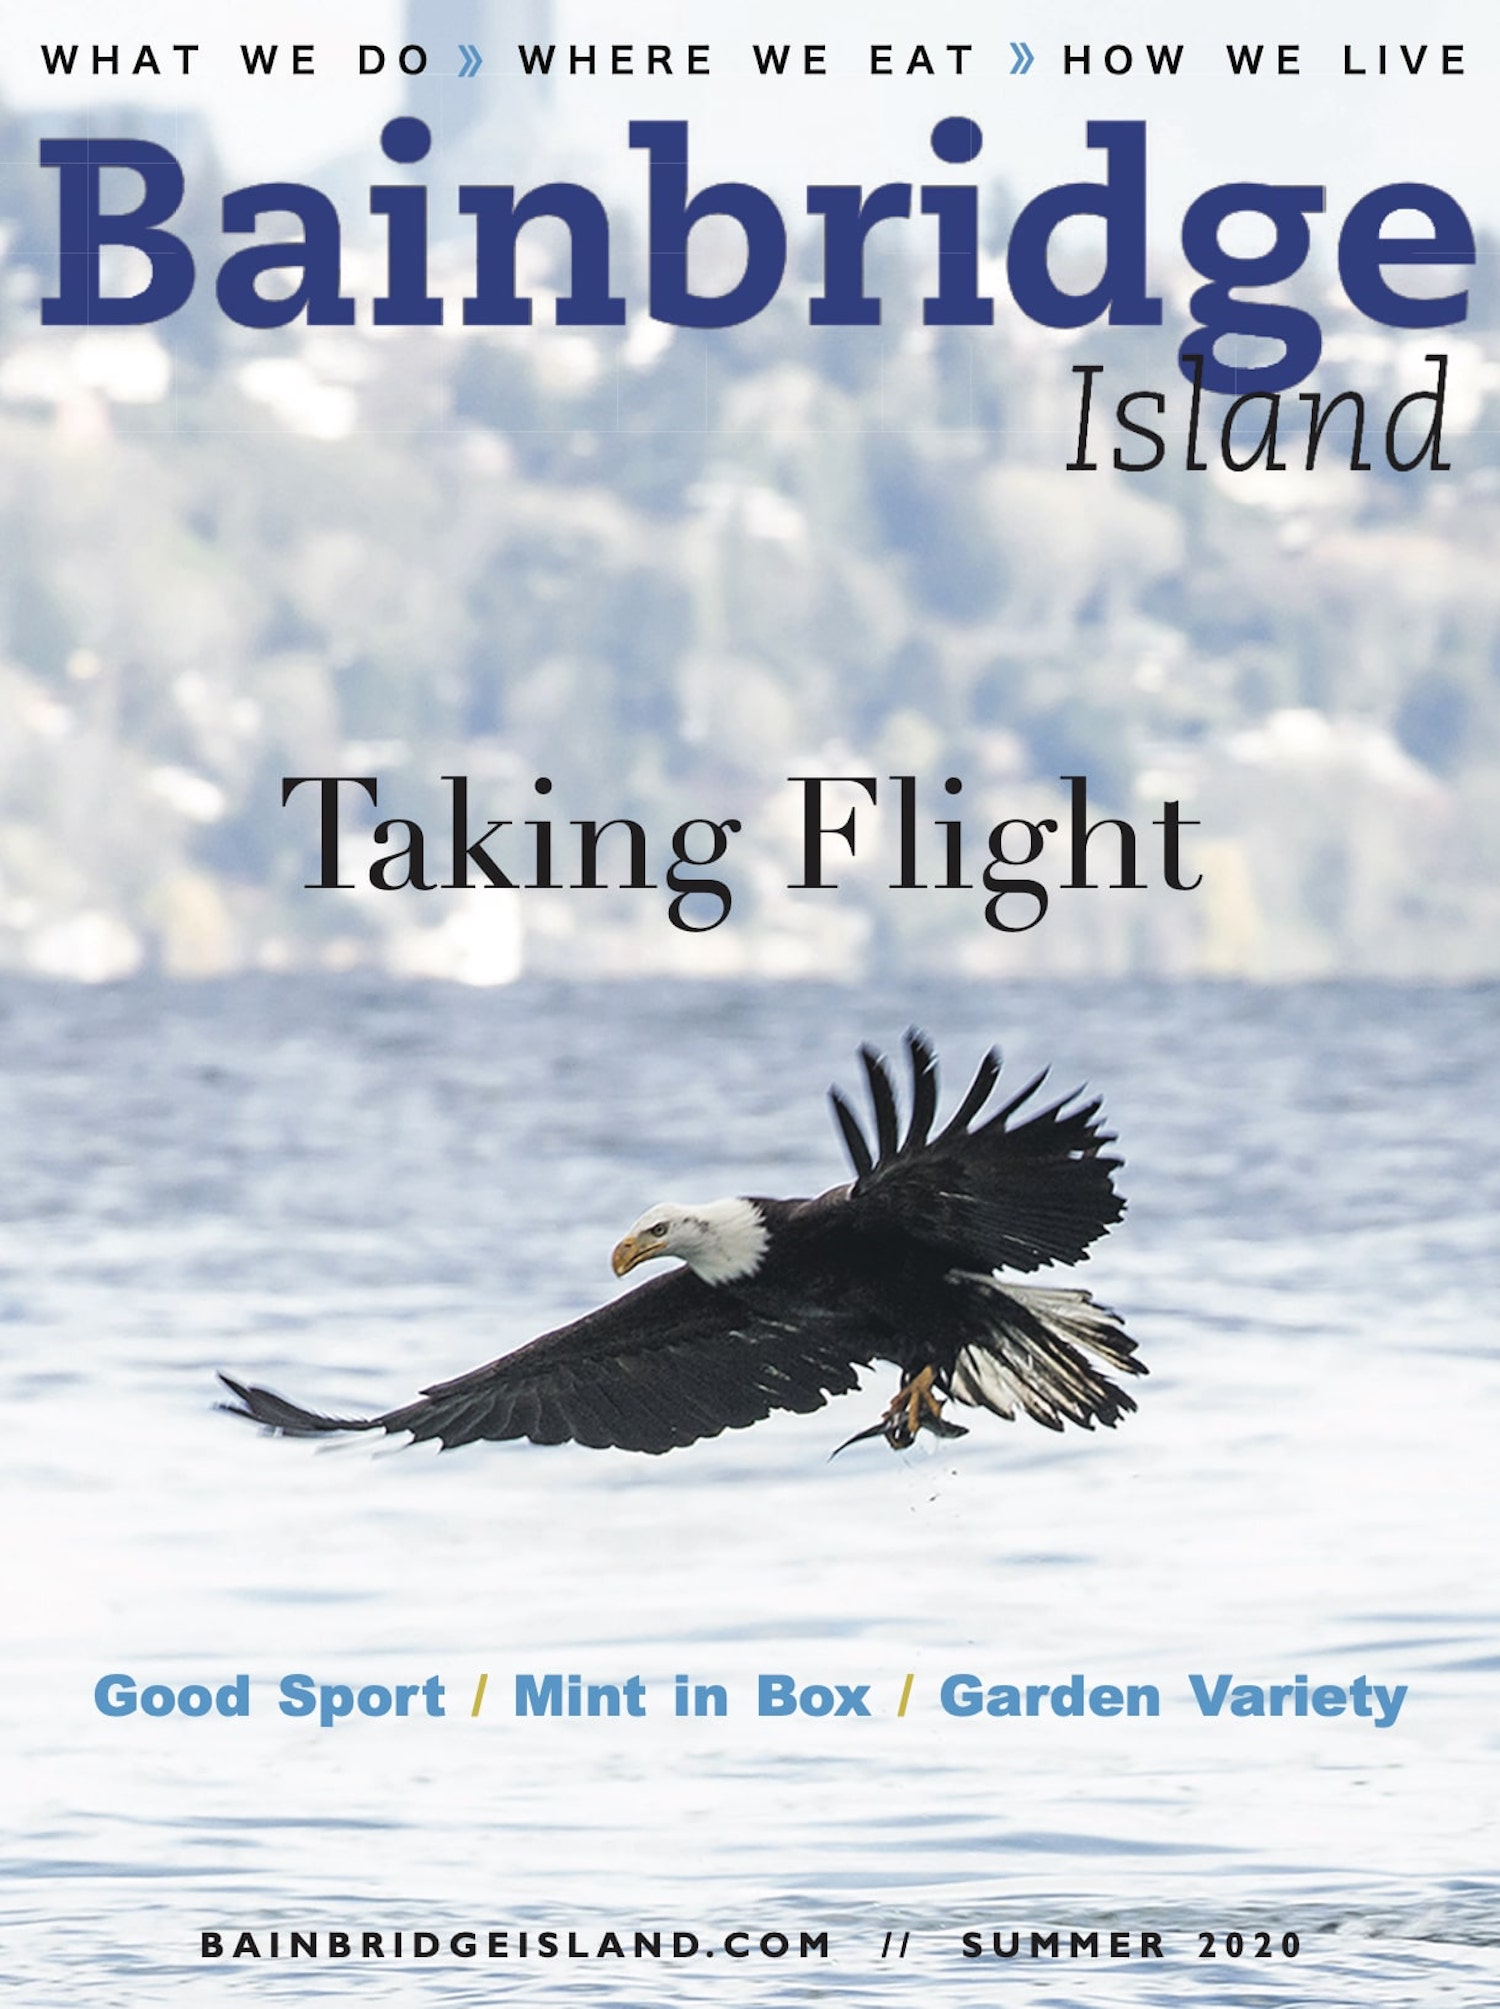 Bainbridge Island Magazine, Summer 2020 Issue